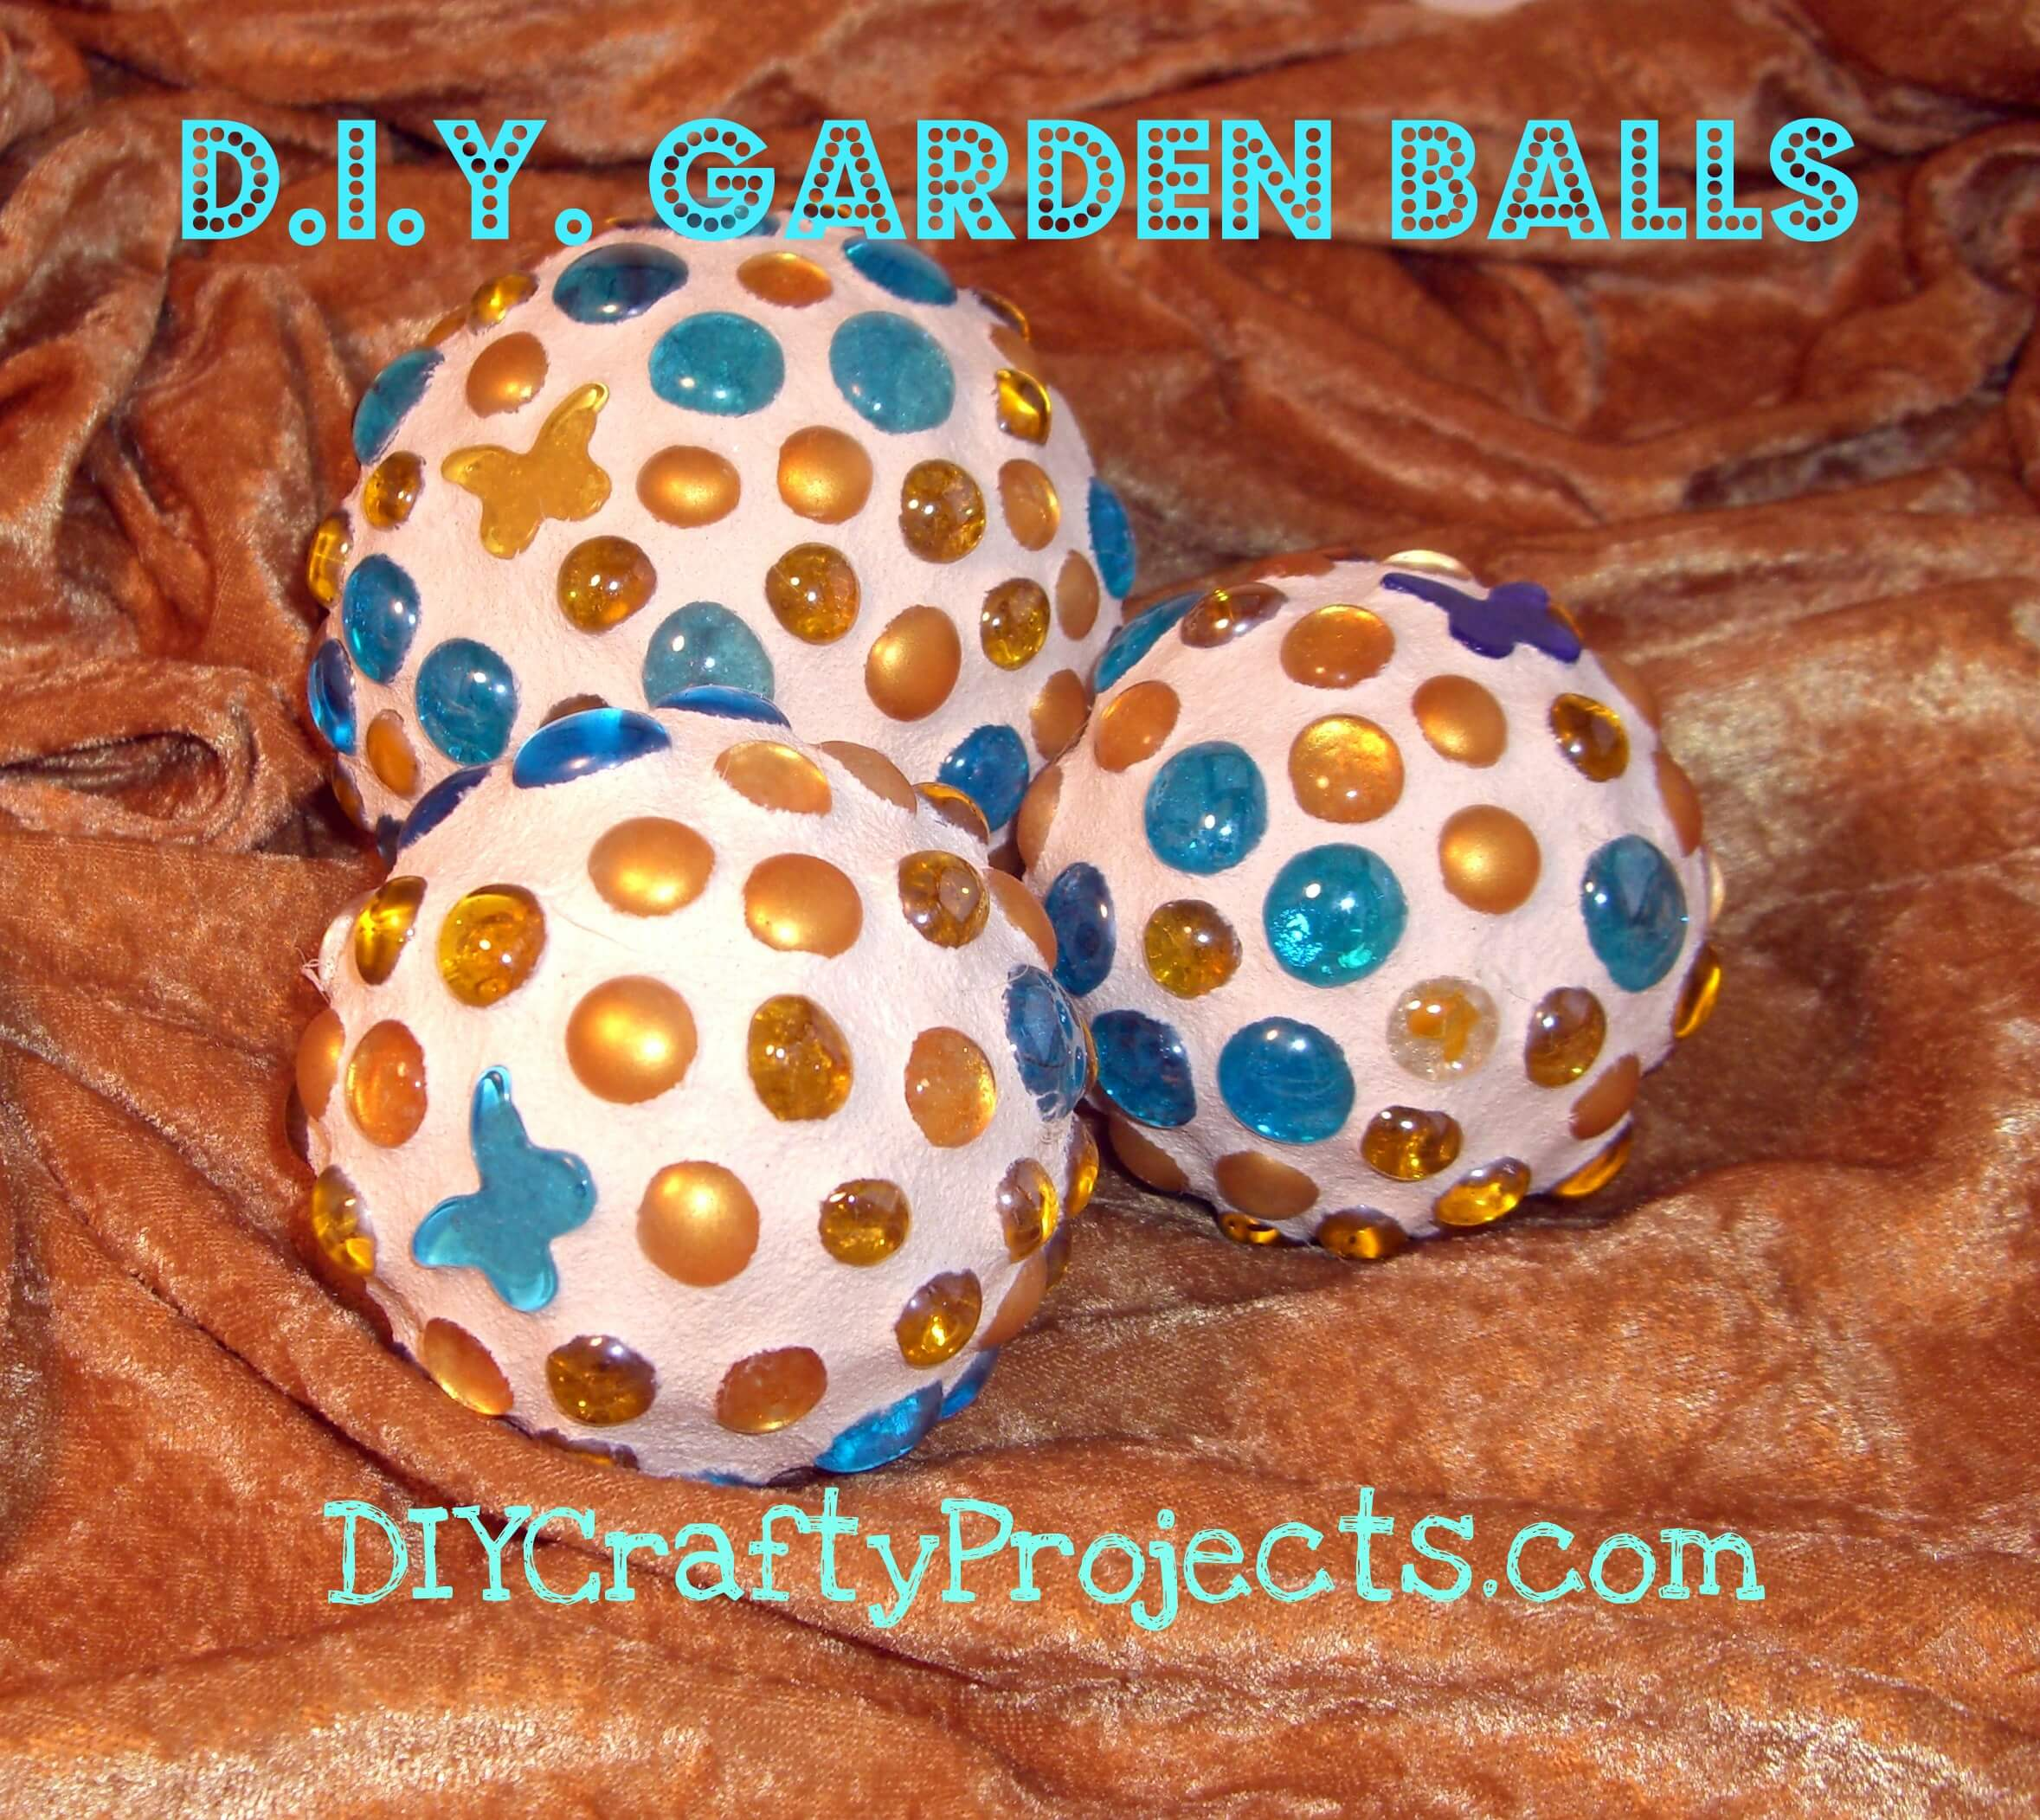 Glass Gem and Butterfly Garden Balls